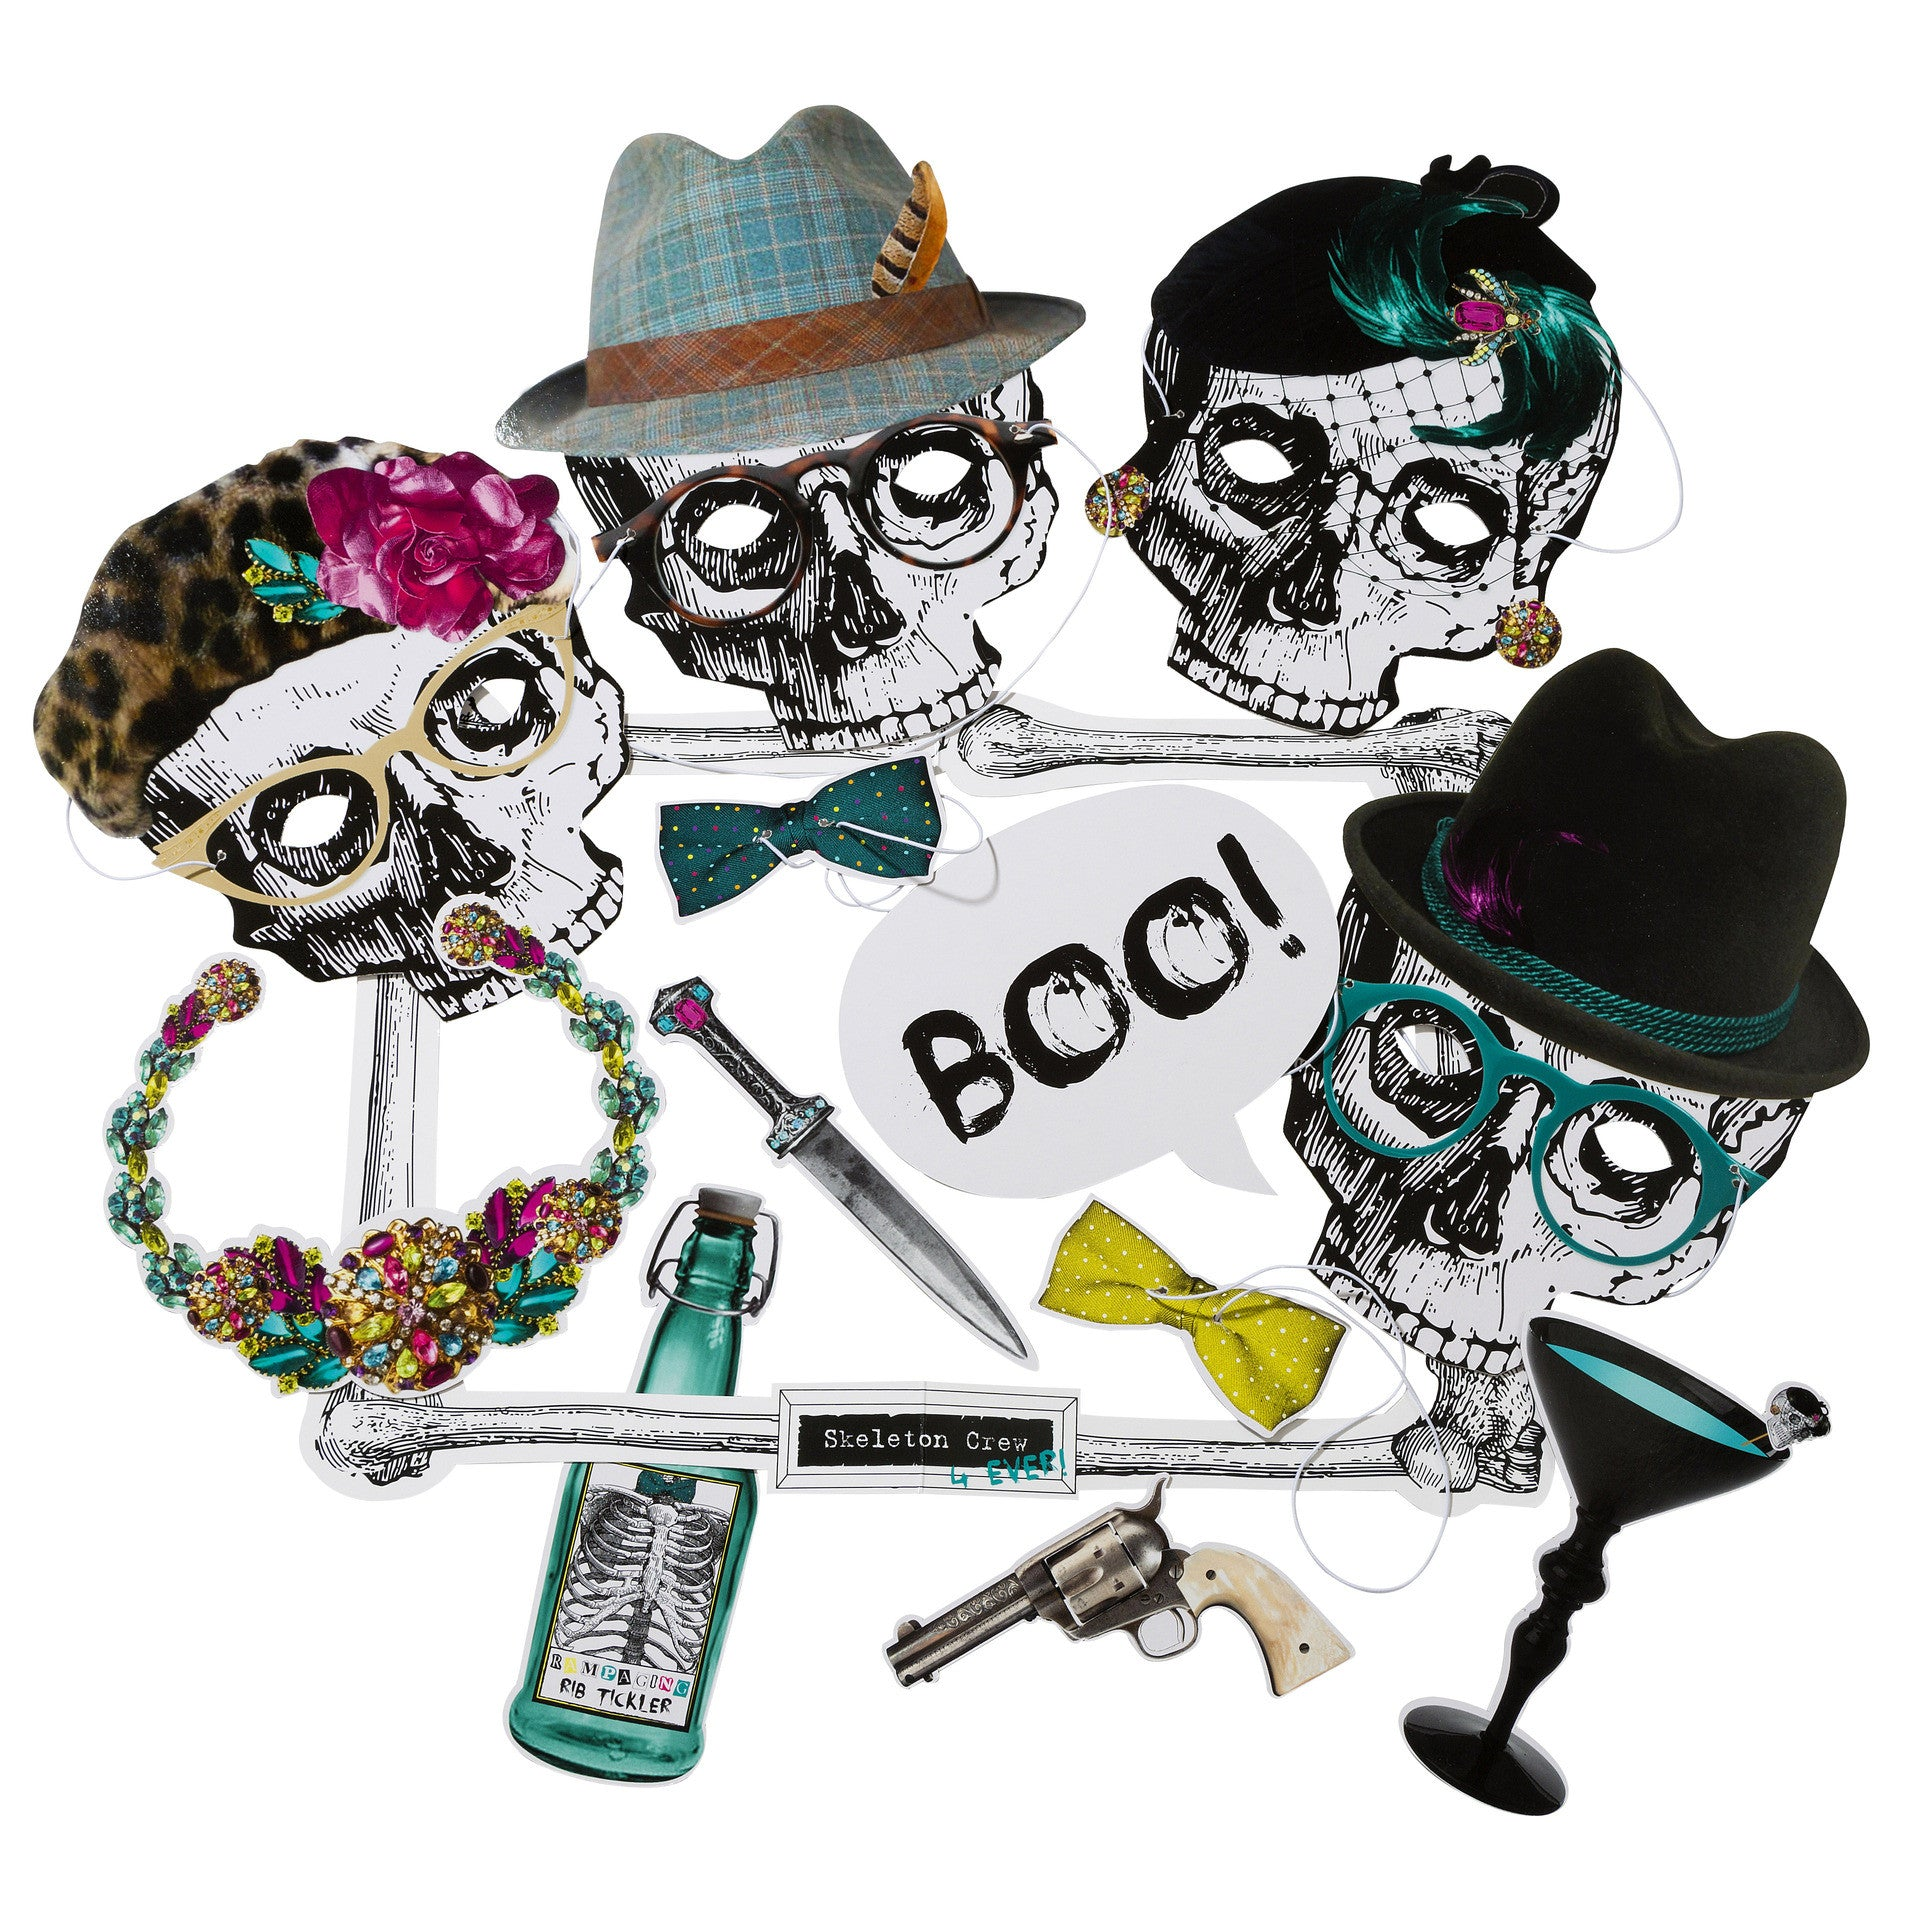 SKELETON CREW PHOTO BOOTH PROPS from Flingers Party World Bristol Harbourside who offer a huge range of fancy dress costumes and partyware items